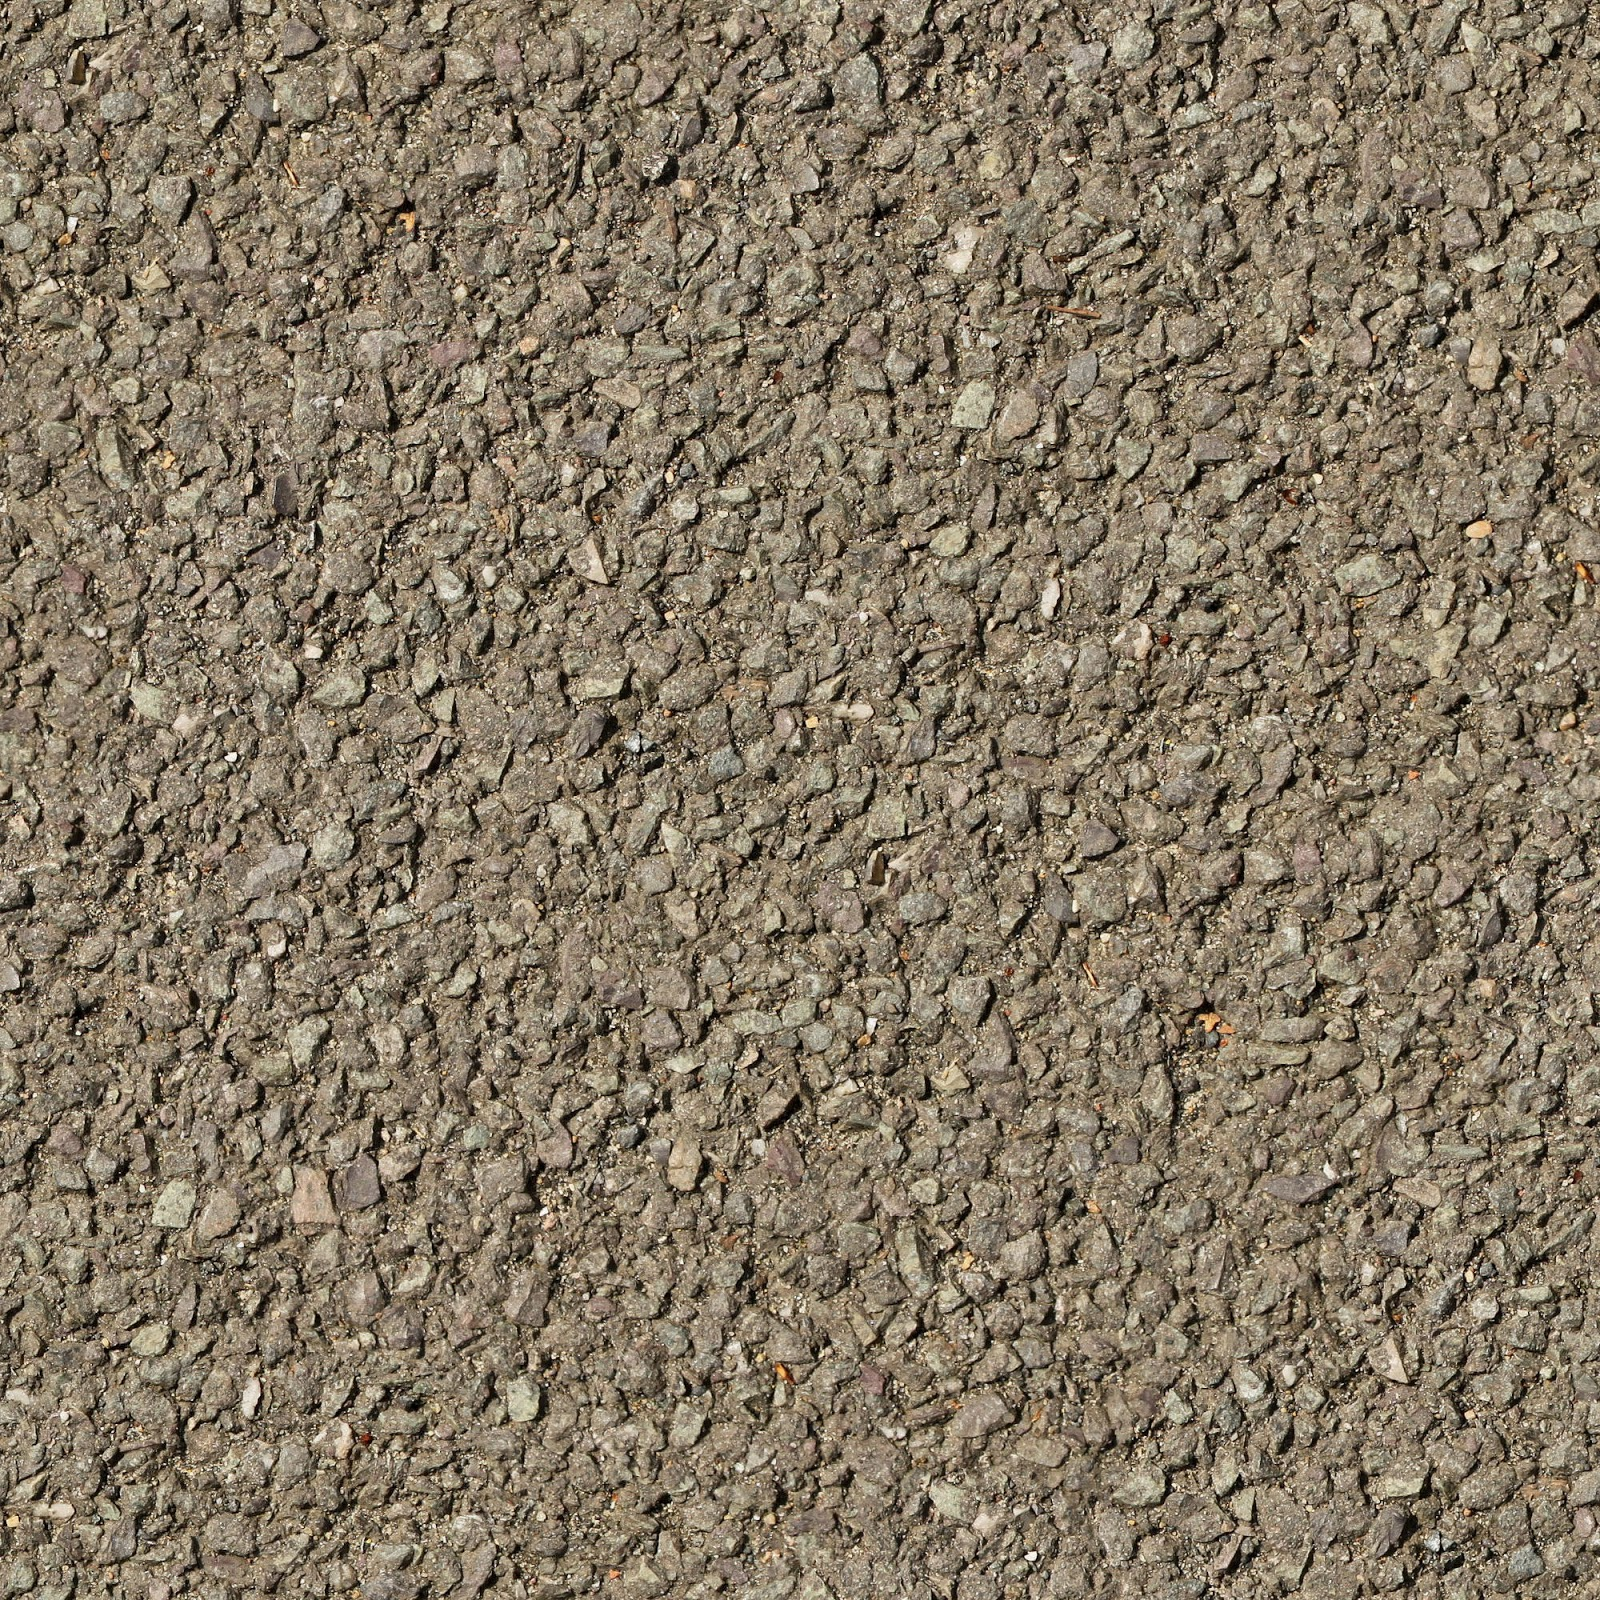 flat roof texture - photo #34